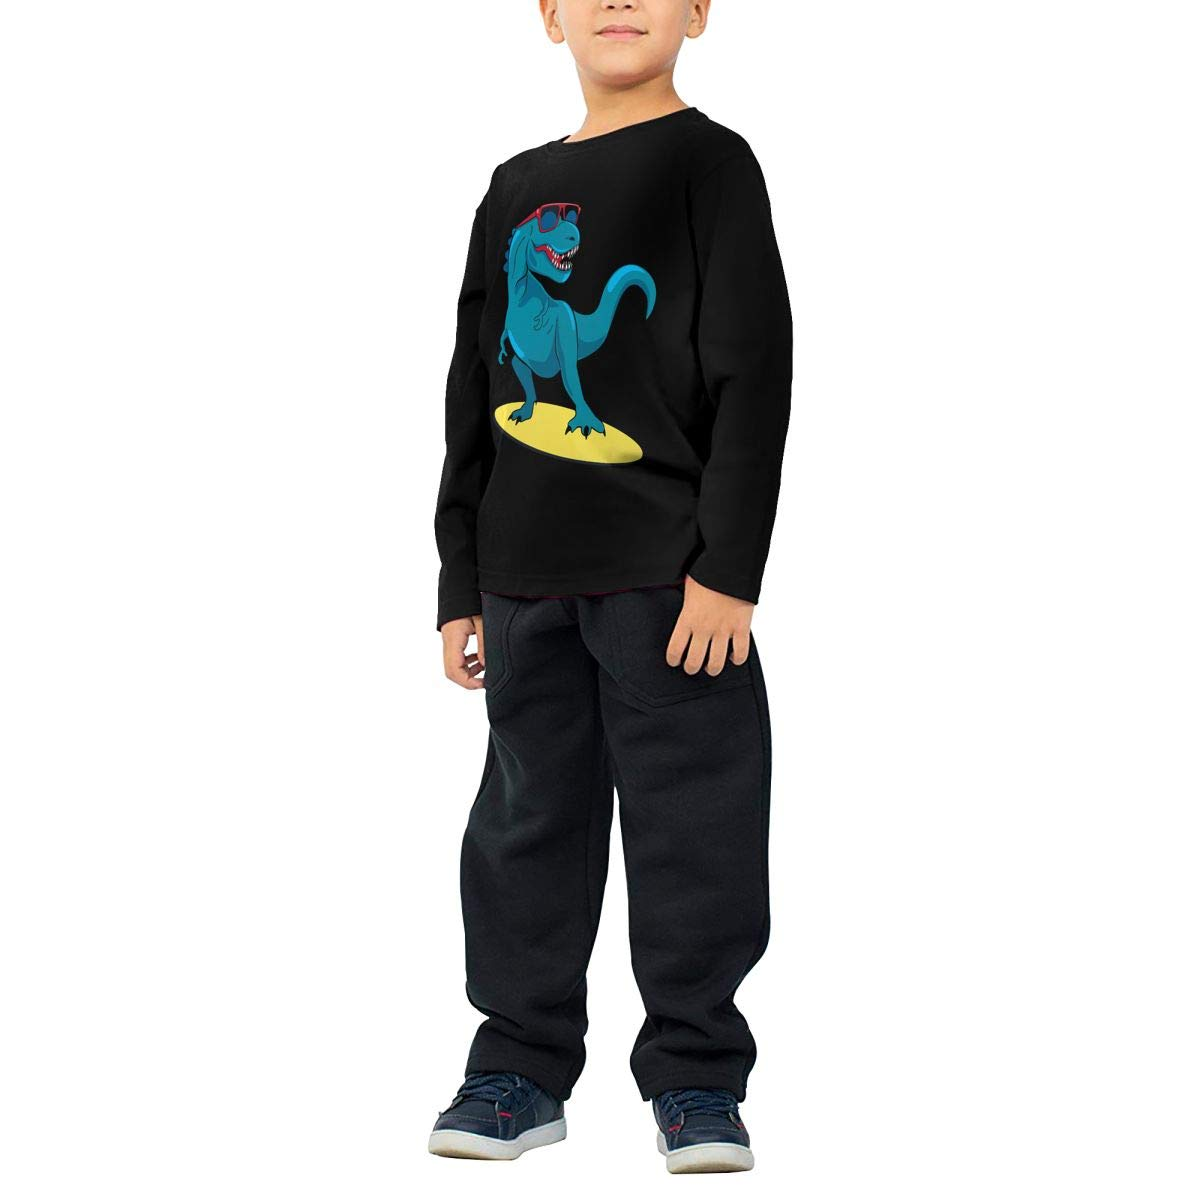 Fryhyu8 Toddler Childrens Surfer Dinosaur Printed Long Sleeve 100/% Cotton Infants T-Shirts